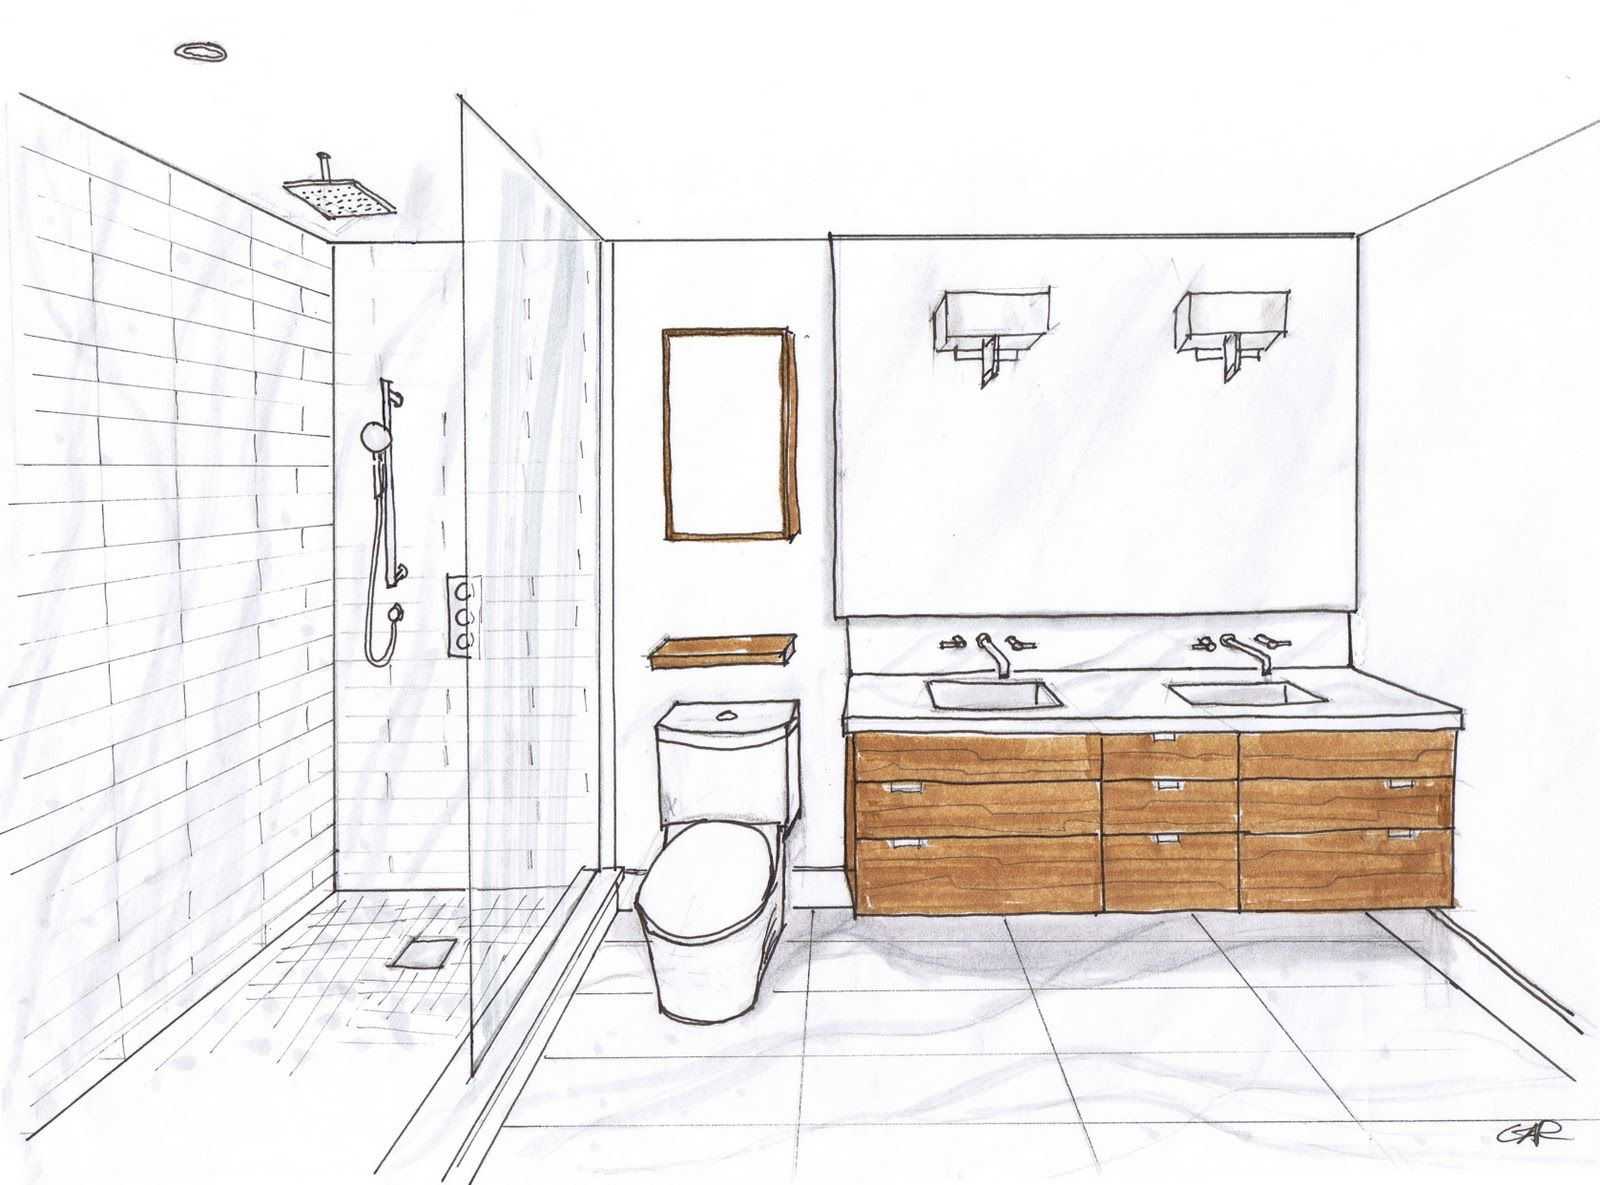 1000  images about Bathrooms on Pinterest   Toilets  Bathroom layout and Floor plans. 1000  images about Bathrooms on Pinterest   Toilets  Bathroom